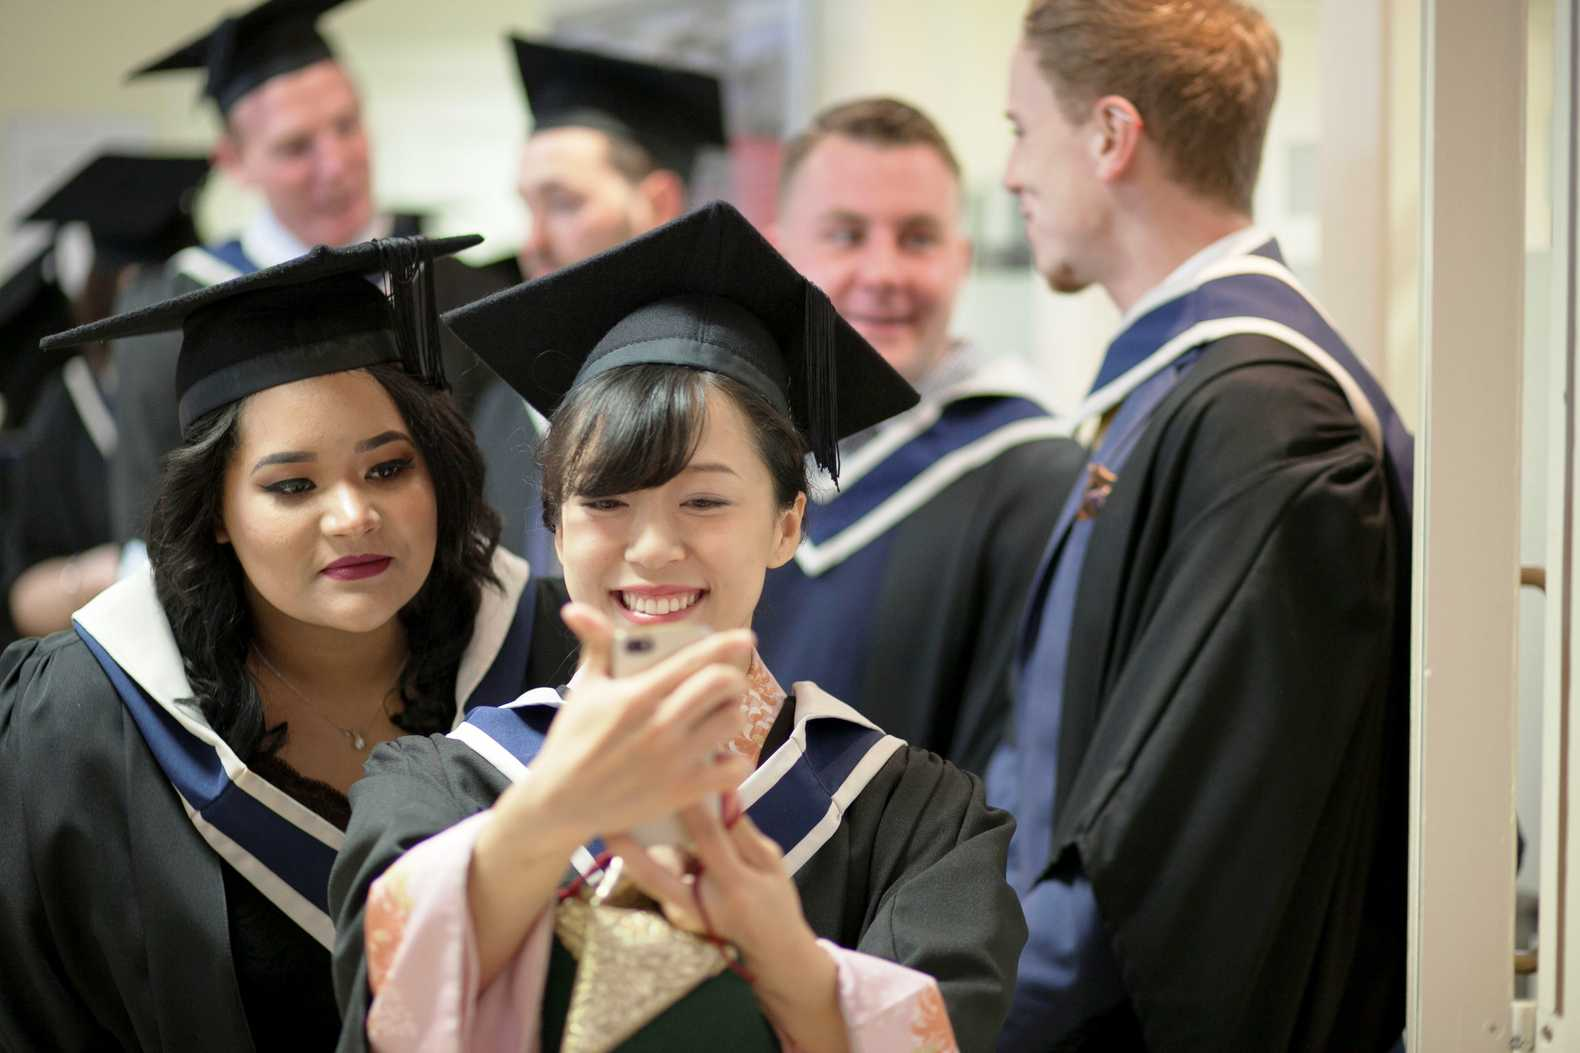 Bachelor of Business Year 3 Graduation